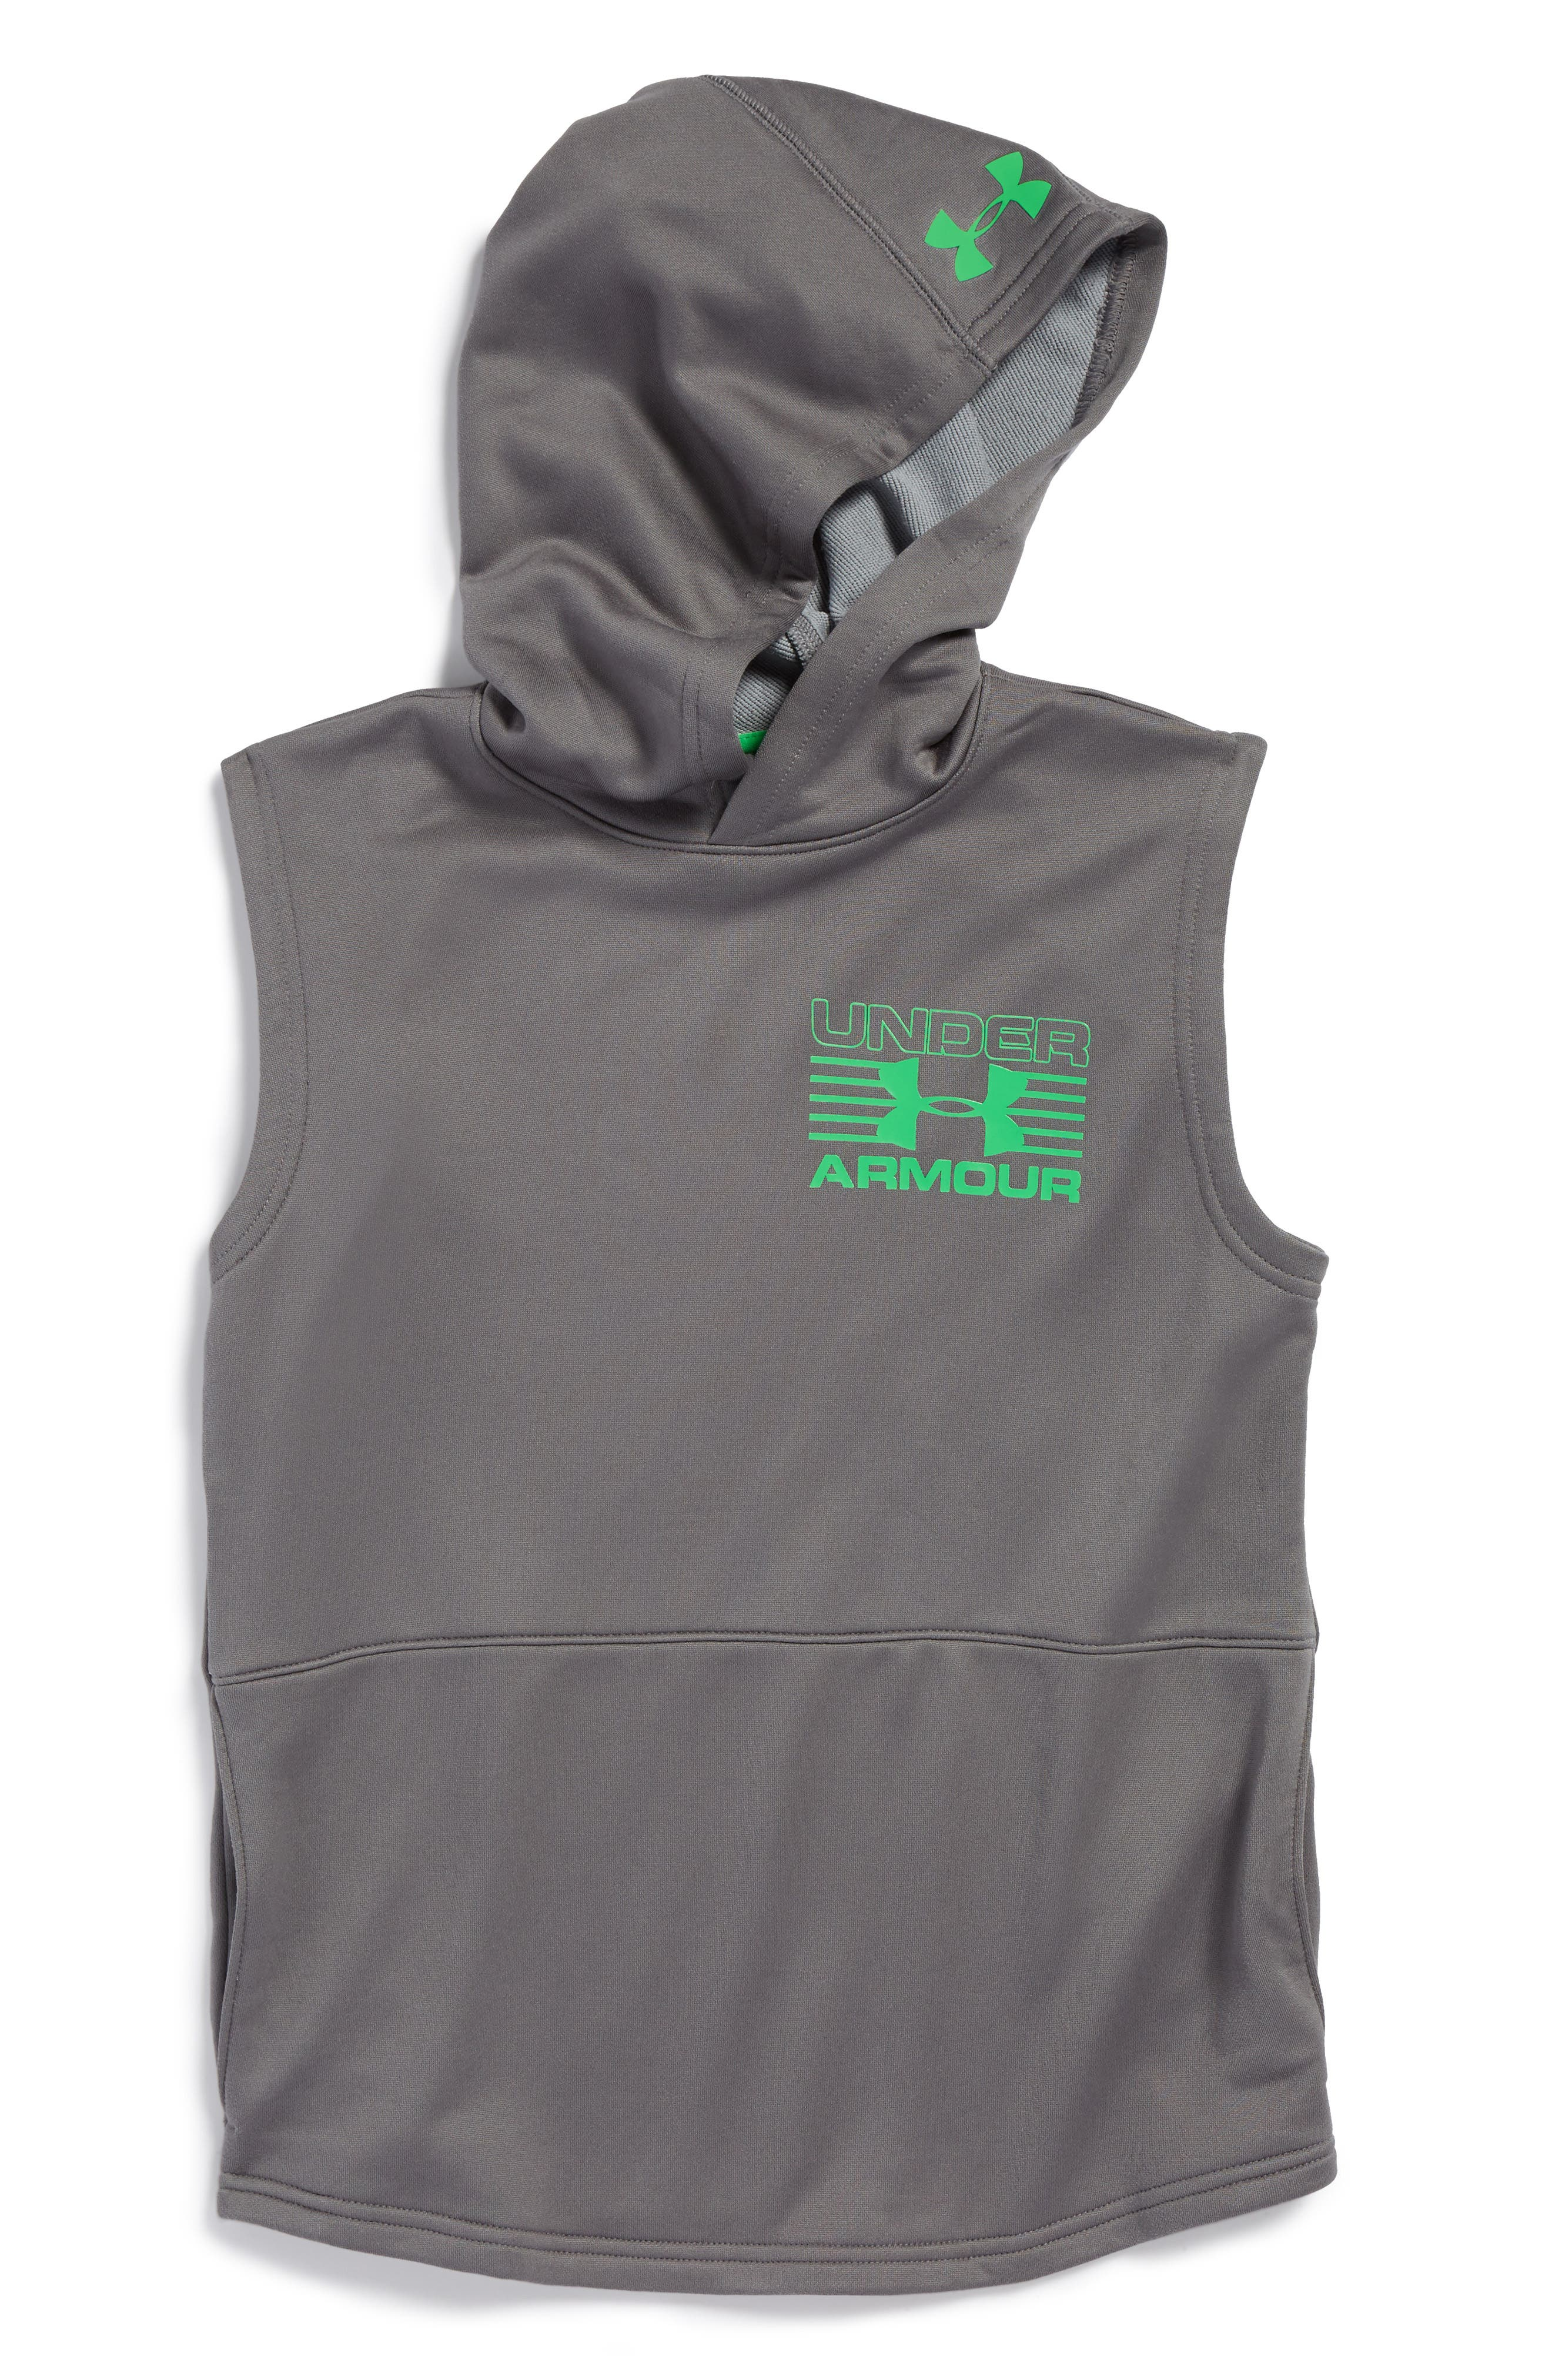 Alternate Image 1 Selected - Under Armour Train to Game Sleeveless ColdGear® Hoodie (Little Boys & Big Boys)